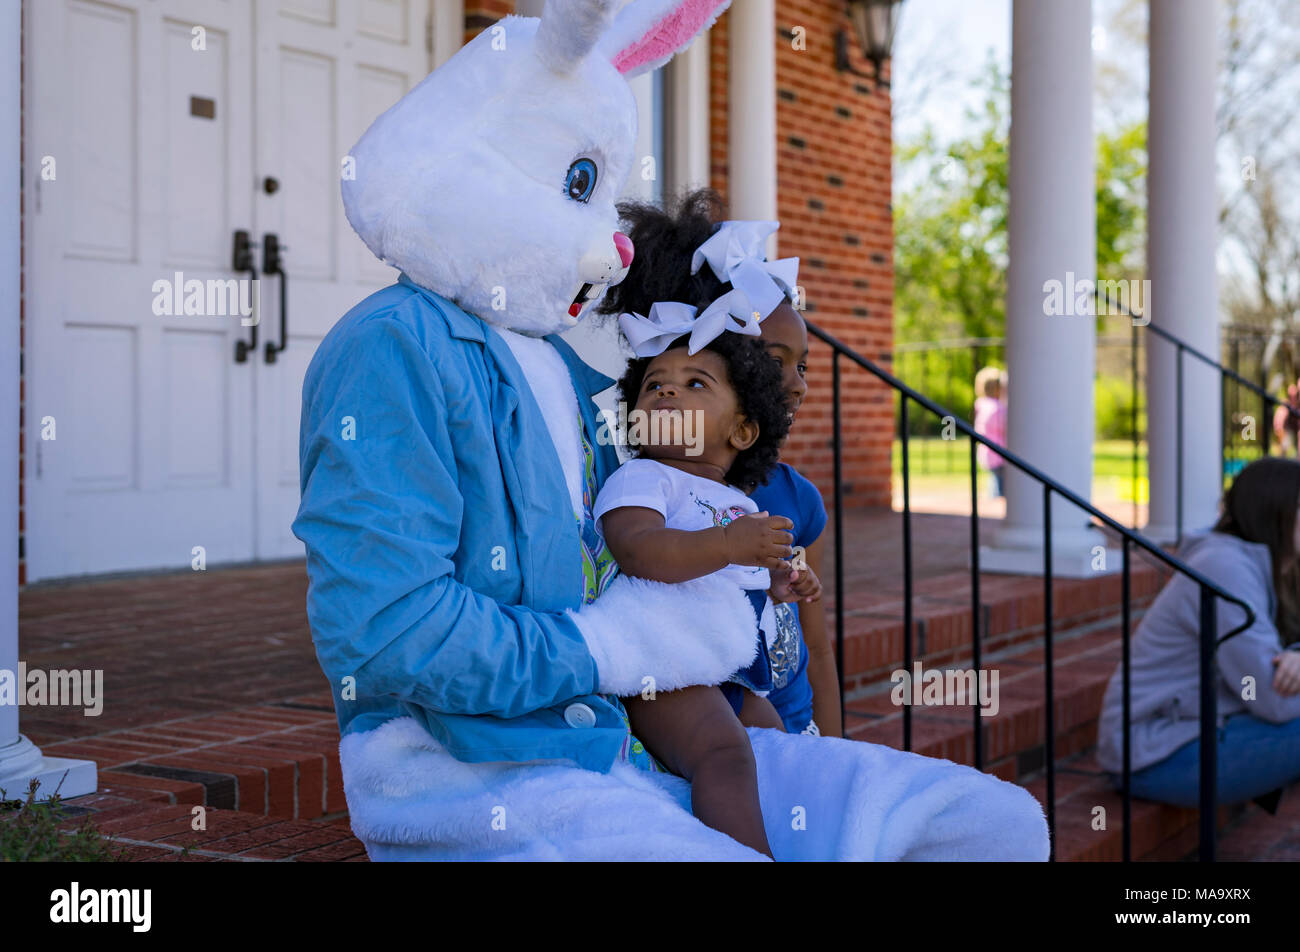 Alabama, USA, 31 Mar 2018. 11-month-old Aniyla Walker, looking at the easter bunny, was not too sure what to think of this large rabbit. Aniyla's older sister, Arya who is six, didn't seem to mind at all. The kids were at the Easter Egg Hunt in Vernon, Alabama with their mother, Aleea. The event was held Saturday, March 31st 2018. Credit: Tim Thompson/Alamy Live News - Stock Image